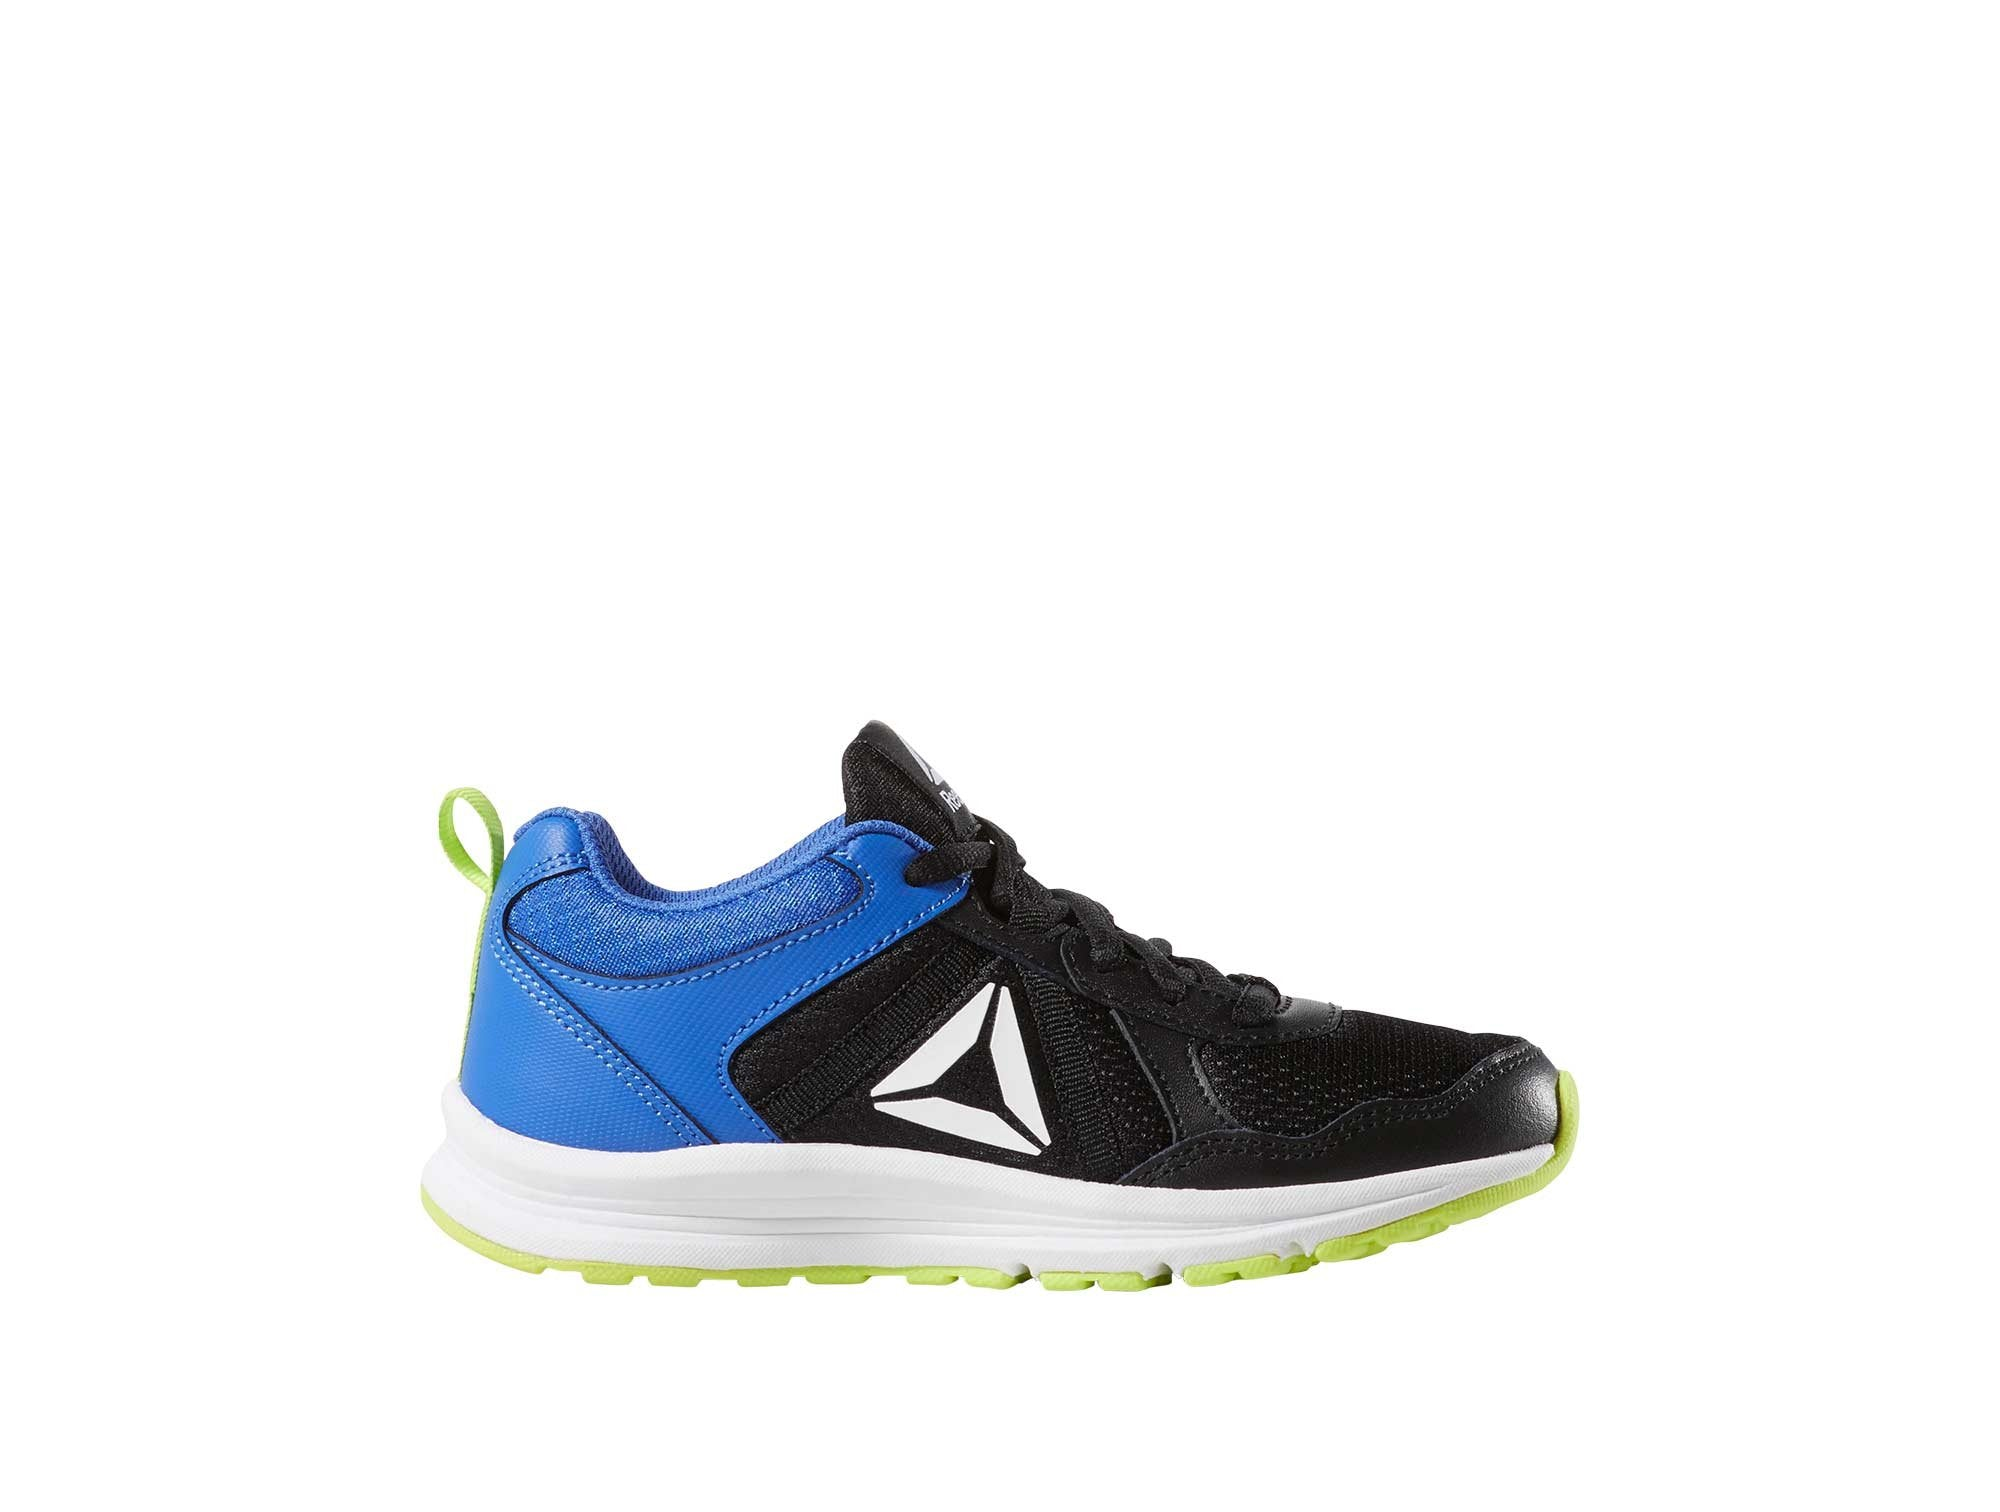 Zapatilla Reebok Almotio 4 Junior Negro